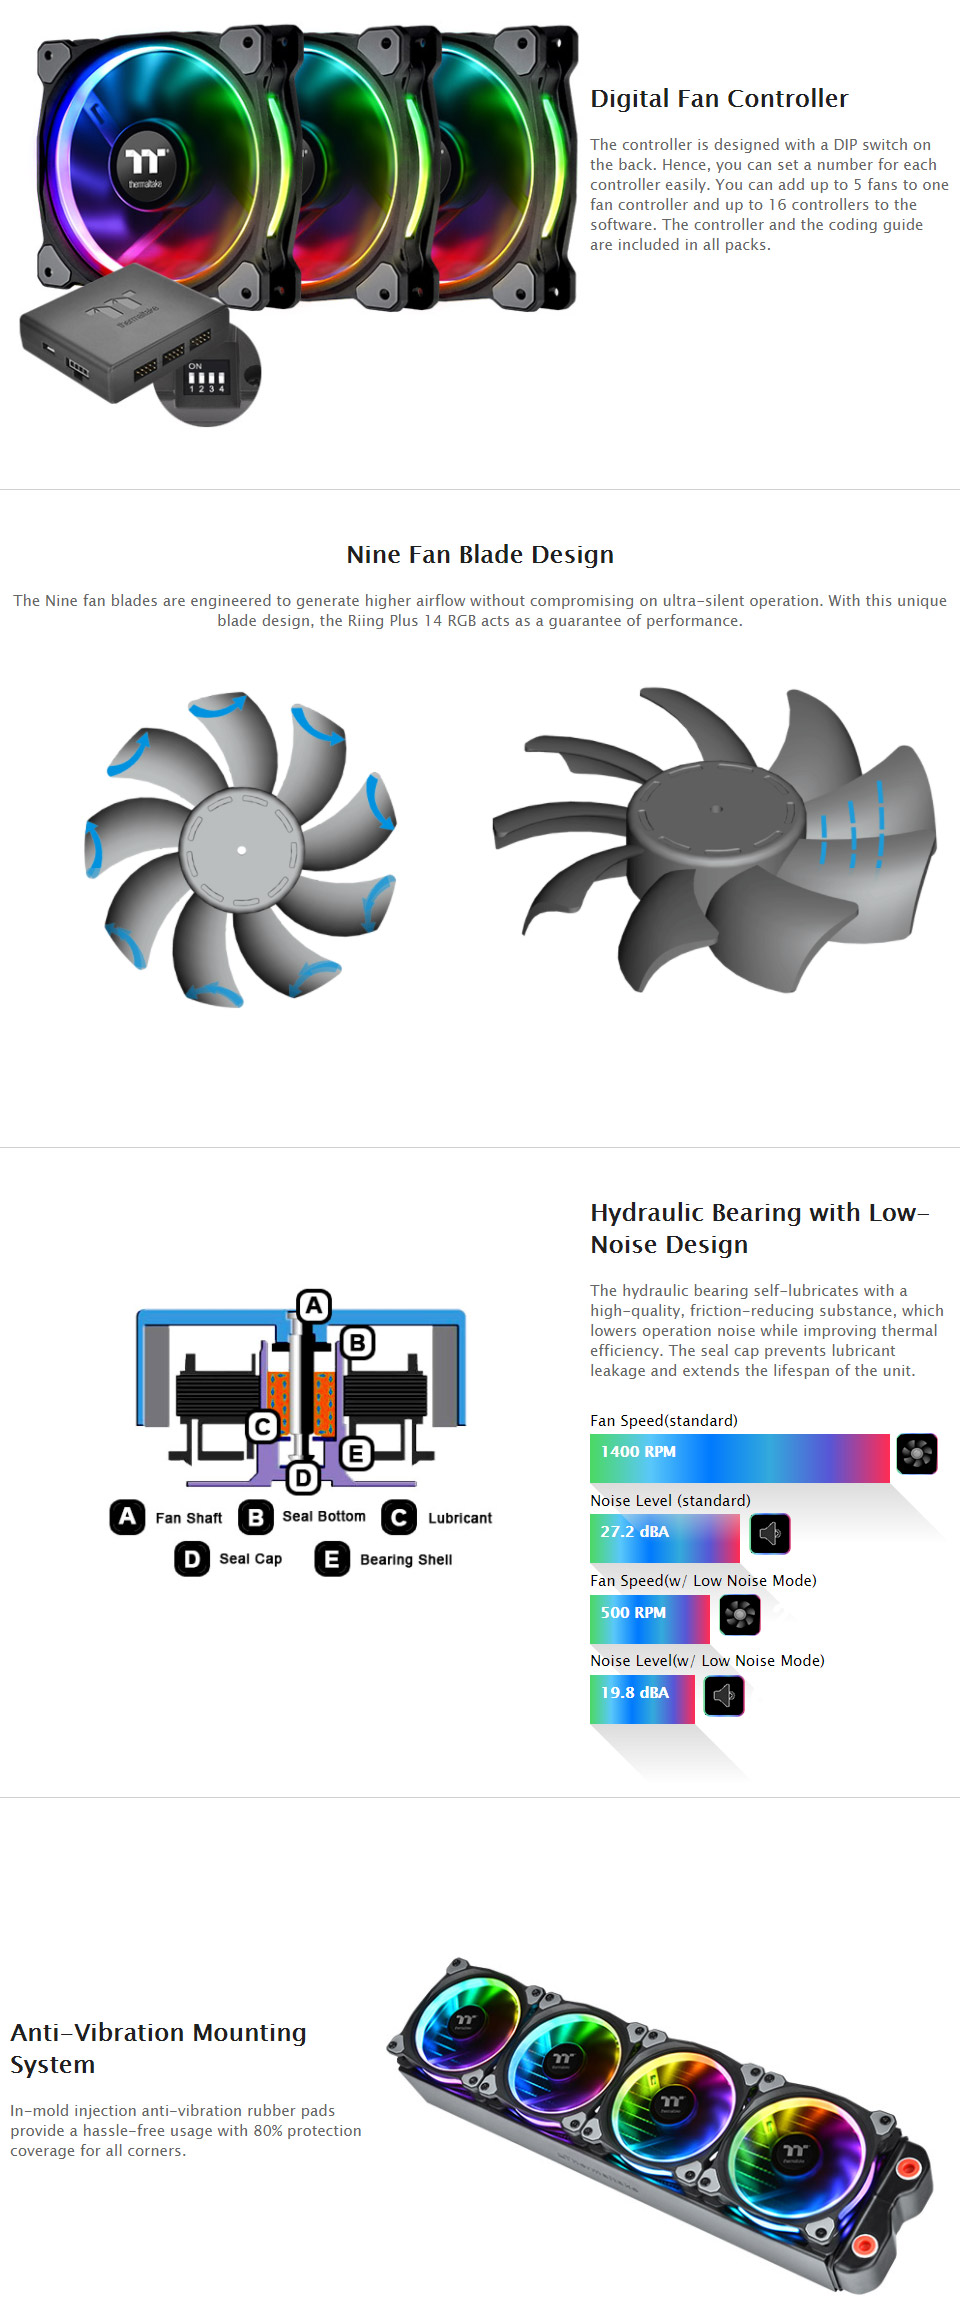 A large marketing image providing additional information about the product Thermaltake Riing Plus 5 Pack 120mm RGB LED Premium Edition Fans w/ Controller - Additional alt info not provided